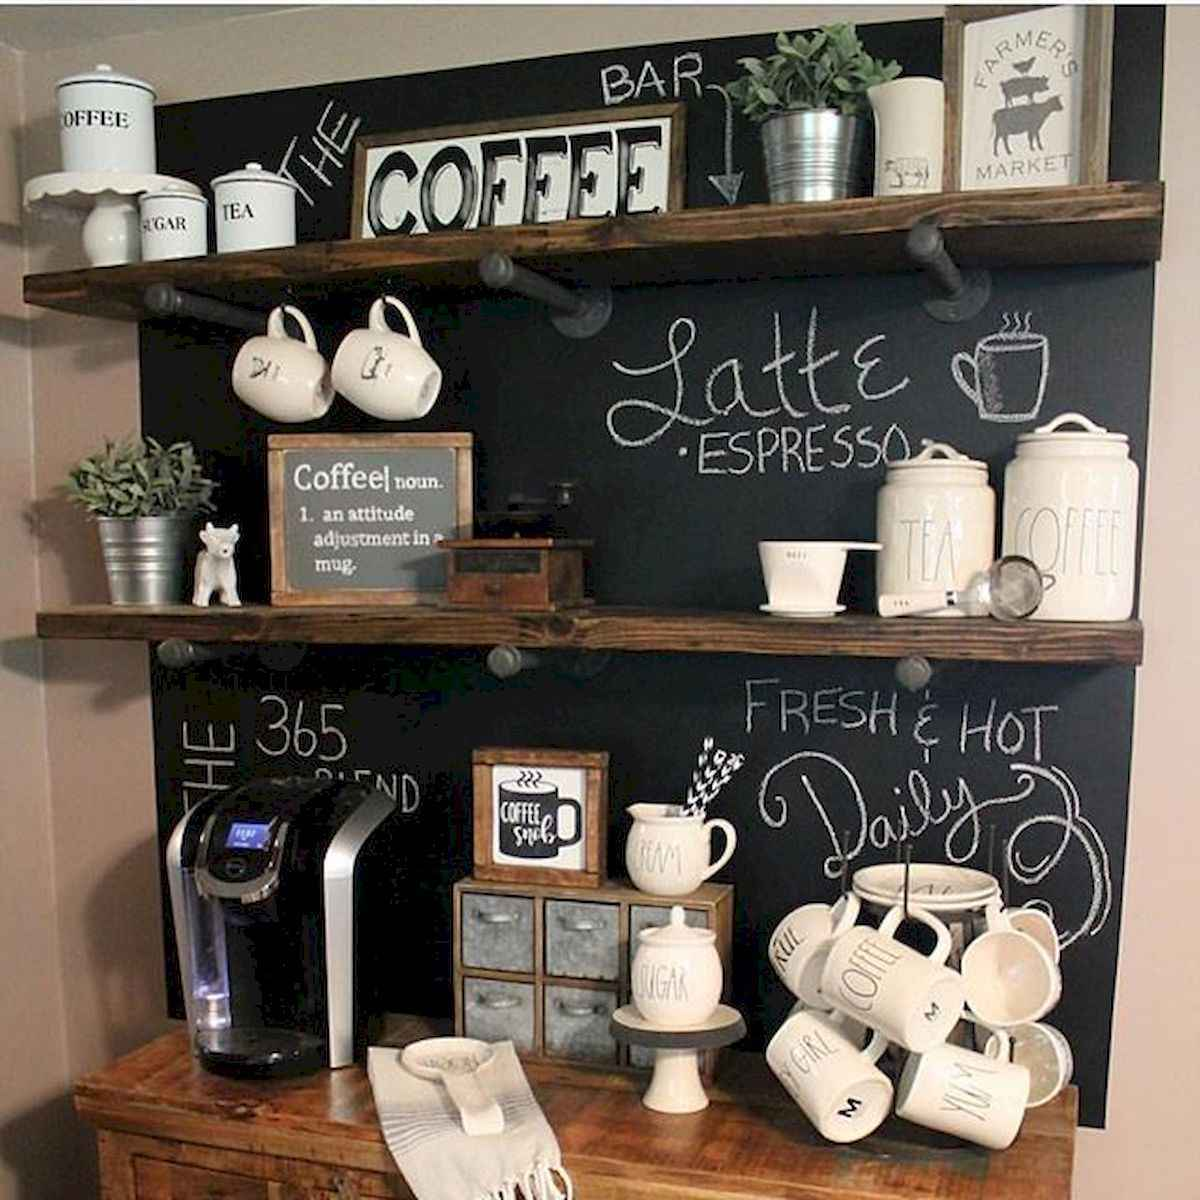 32 Awesome DIY Mini Coffee Bar Design Ideas For Your Home (21)